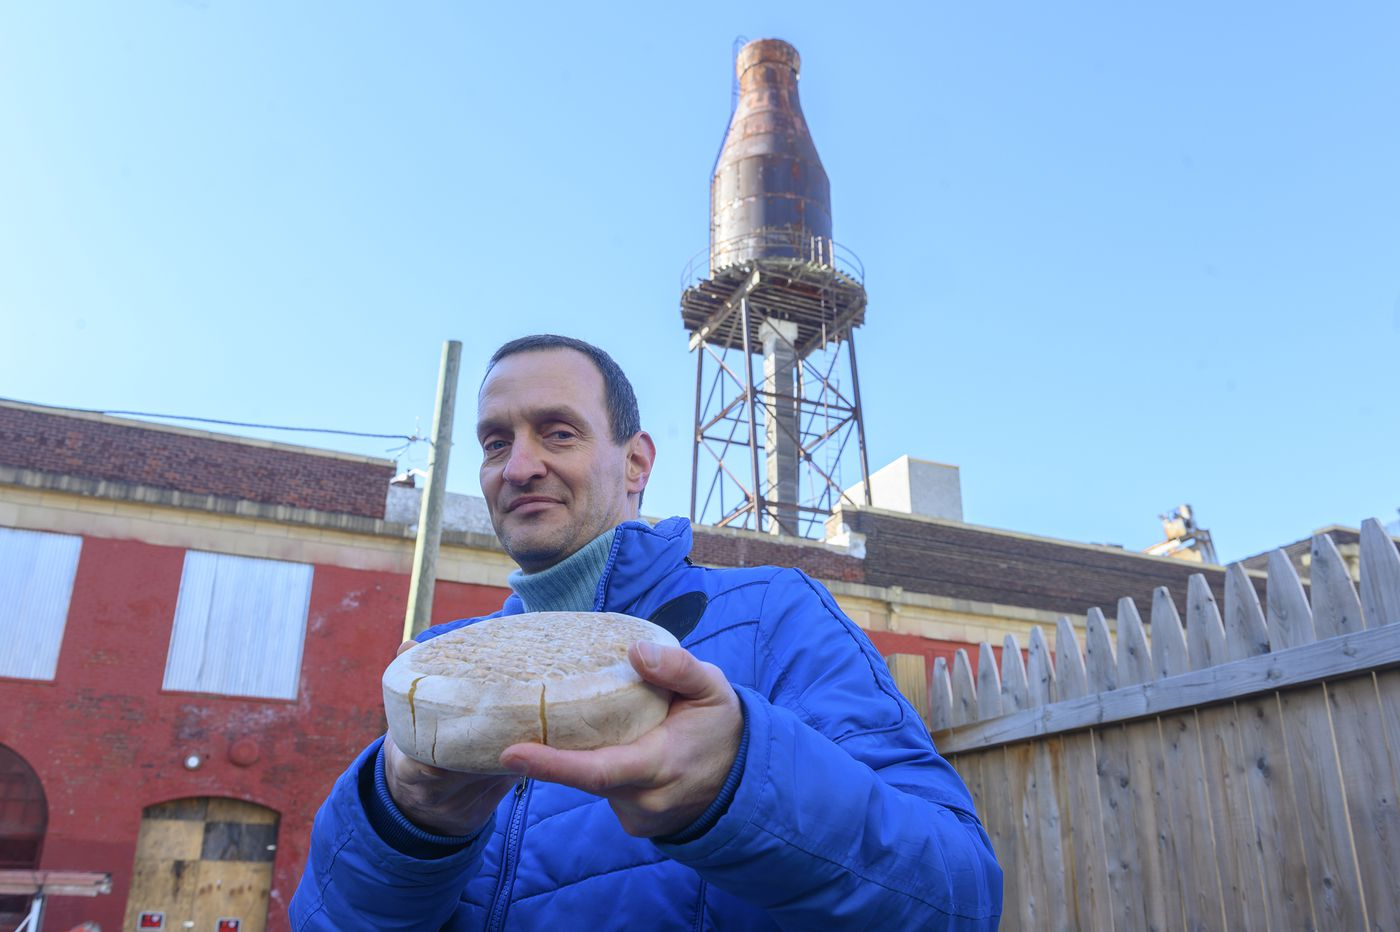 Cheese maker plans to bring milk back to Kensington